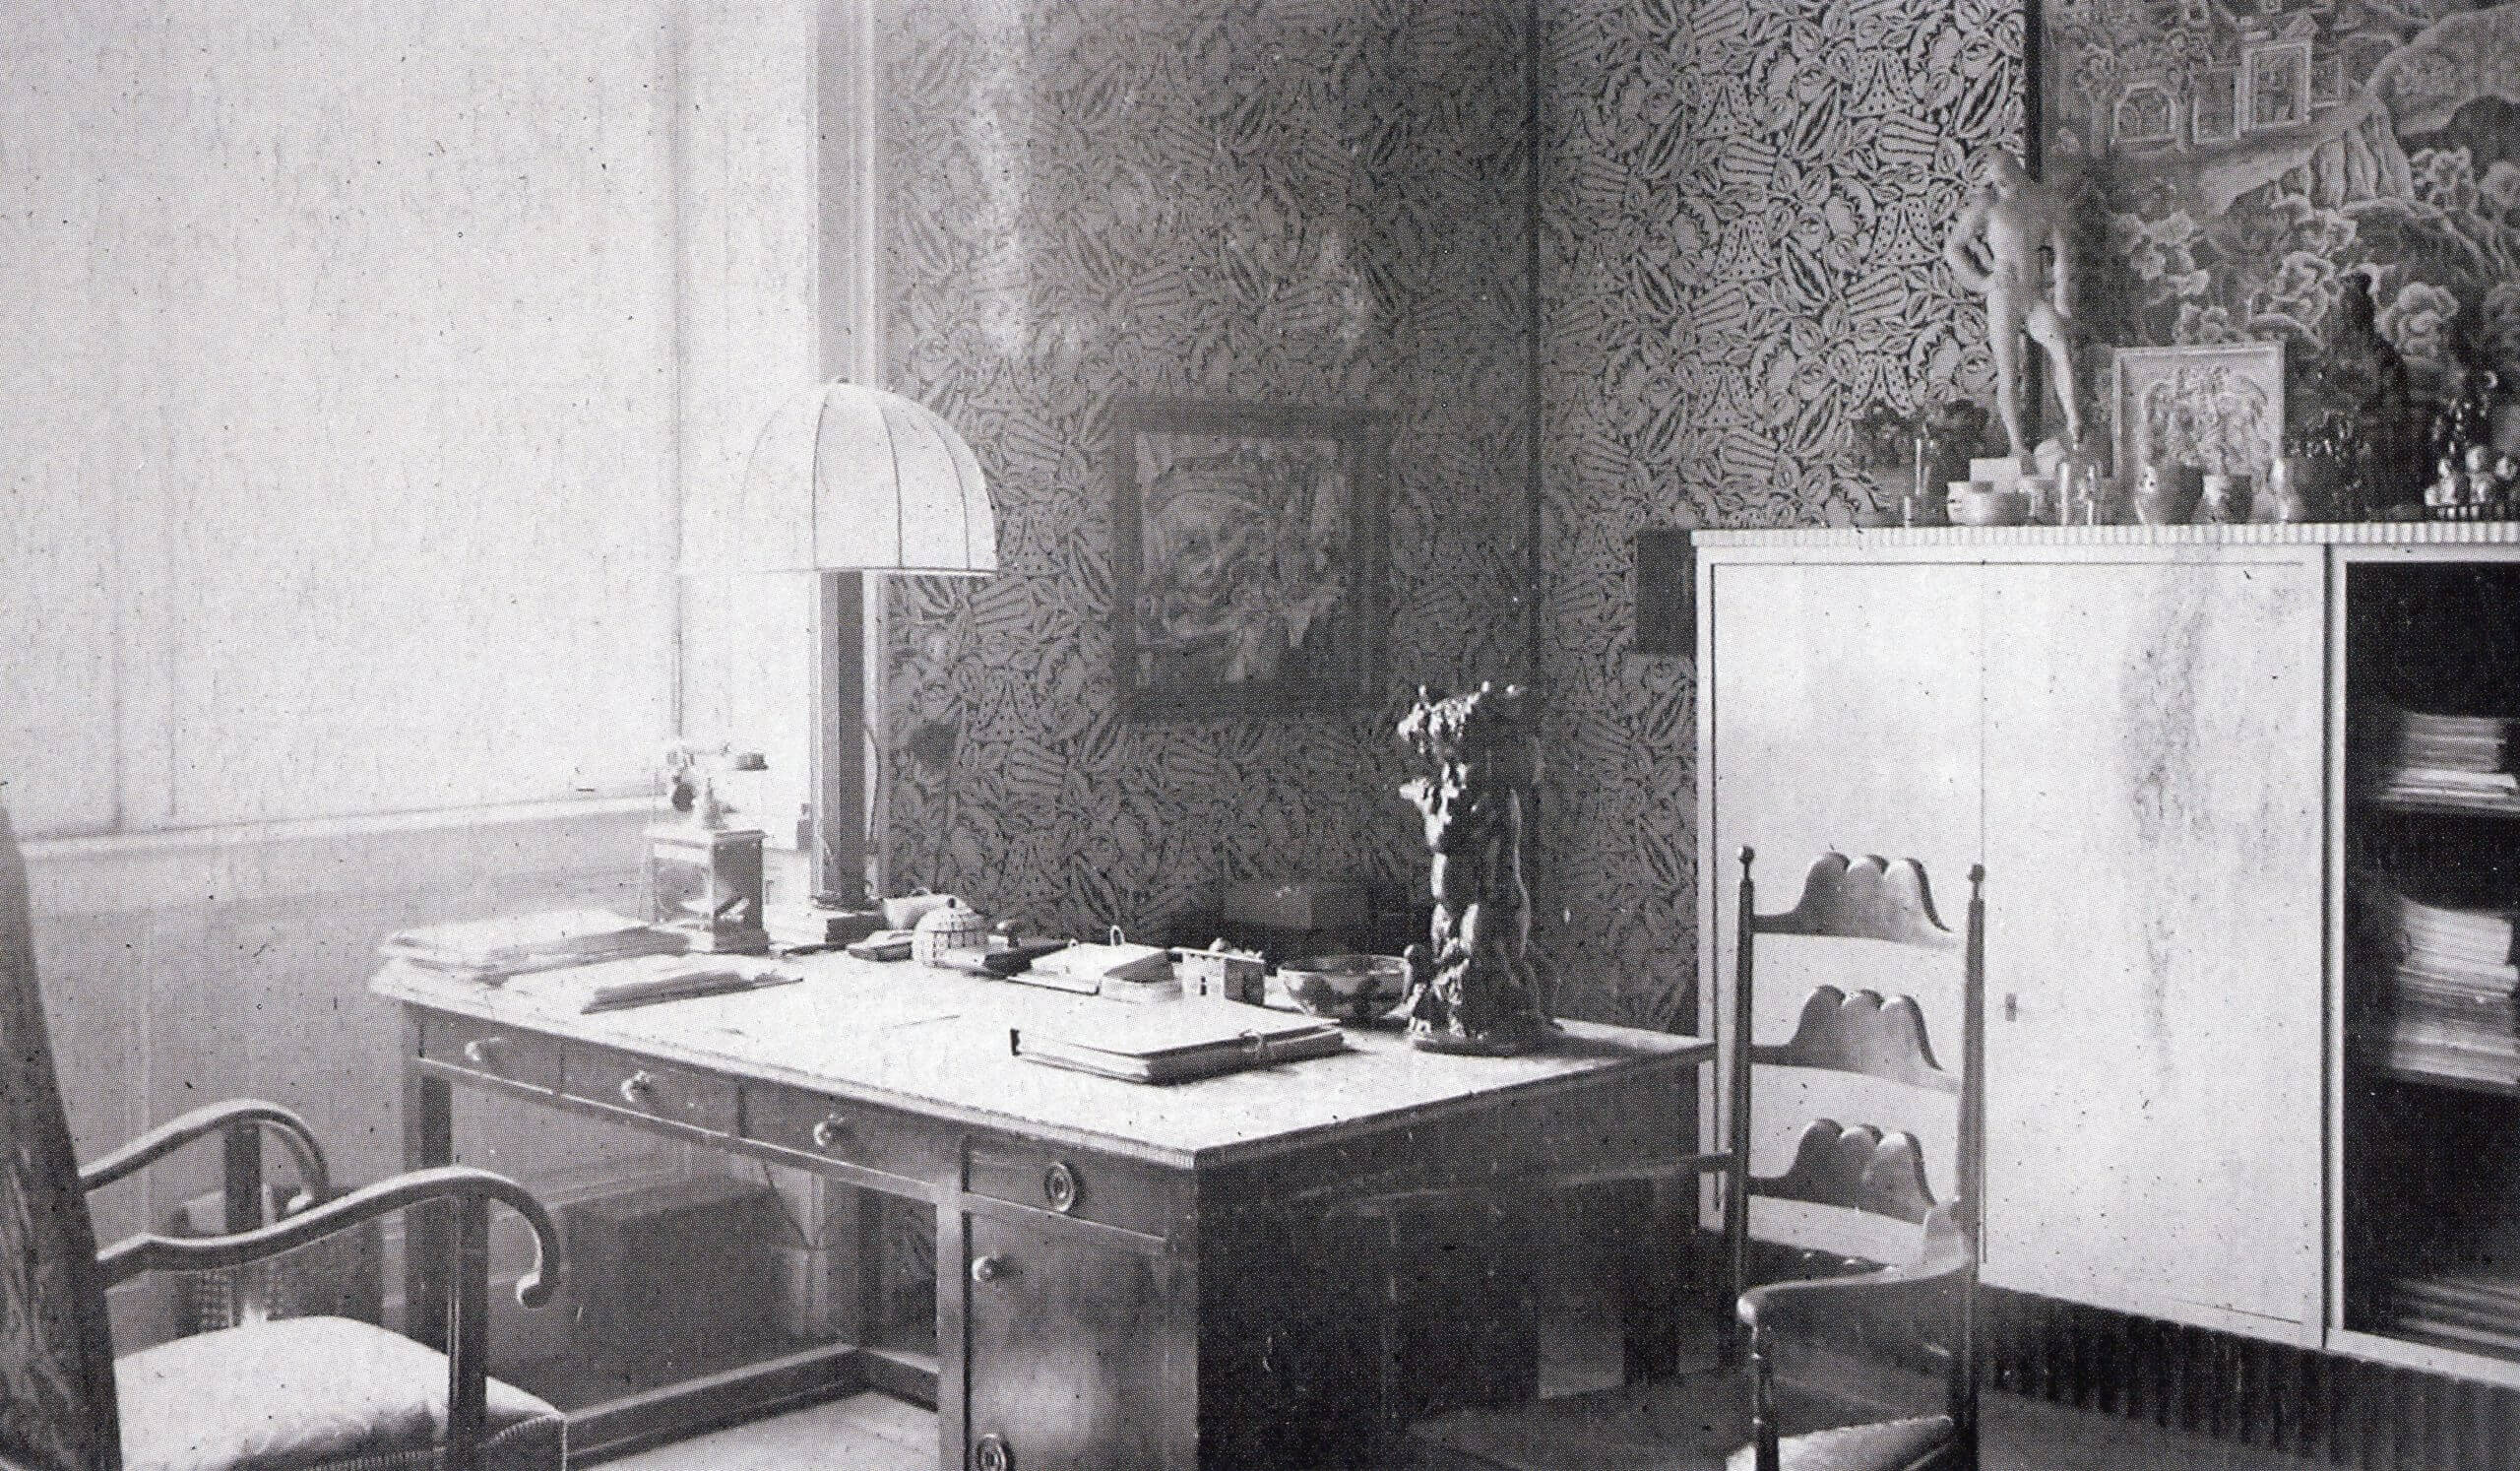 Josef Hoffmann's office